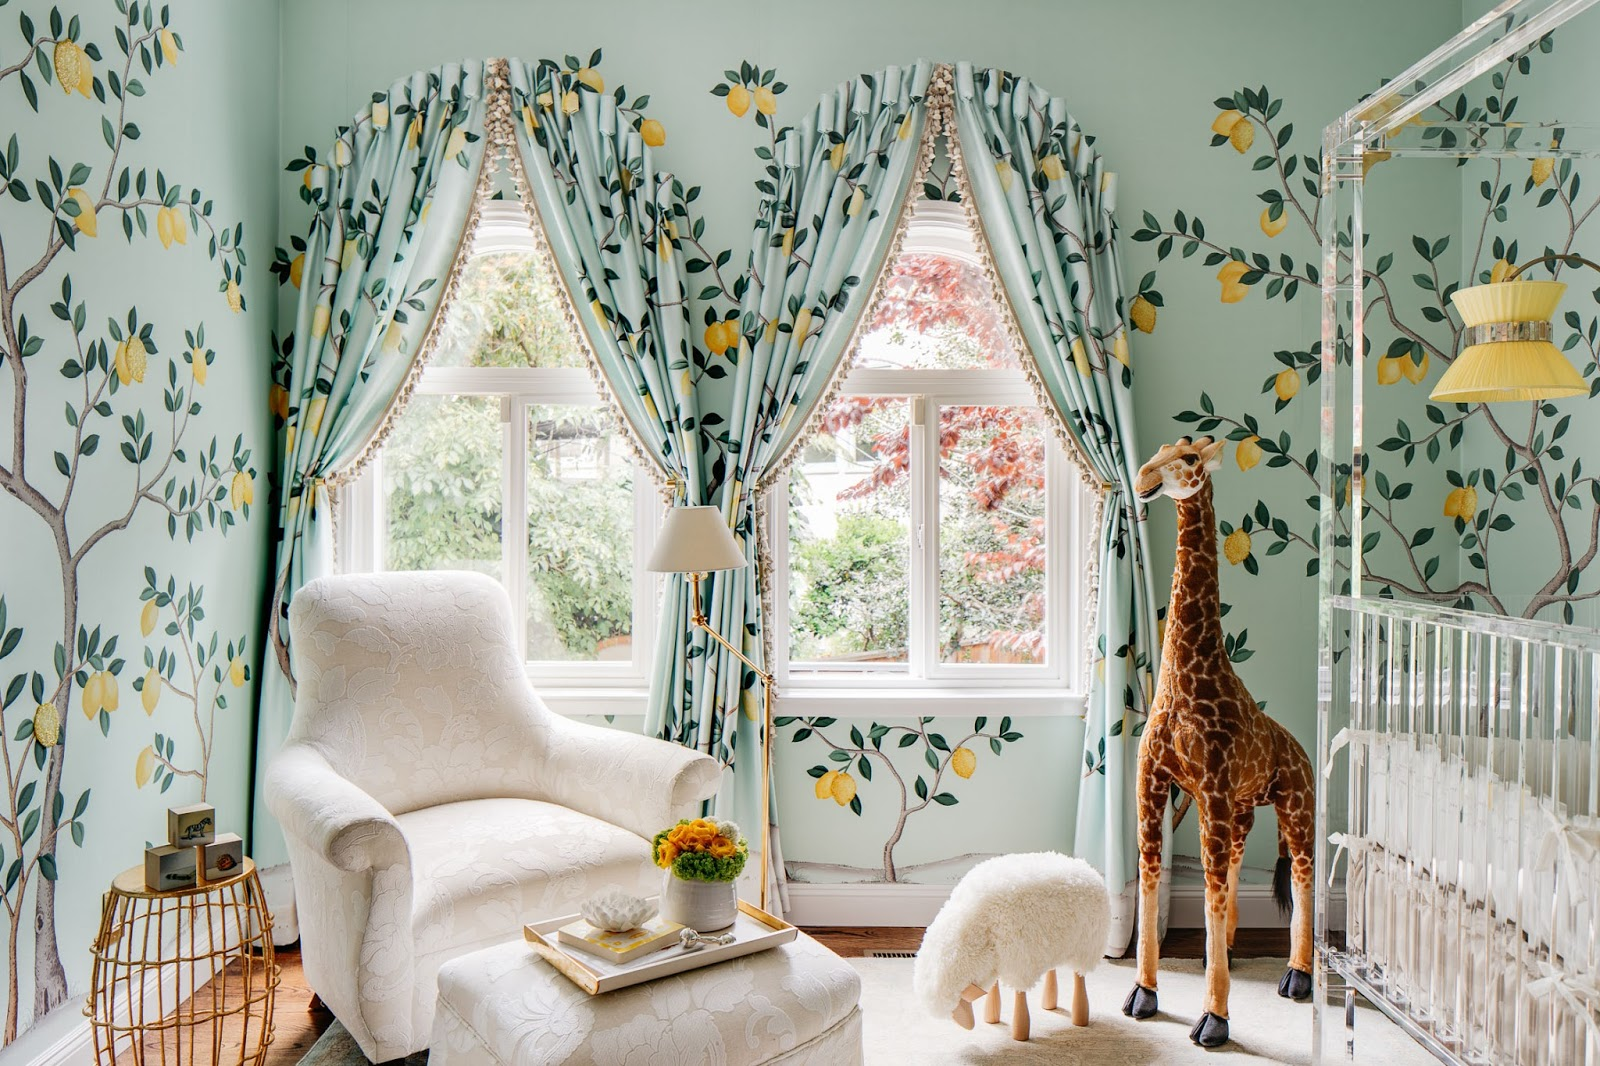 De Gournay Lemon Wallpaper Trellis Ceiling And An Acrylic Crib In A Nursery By